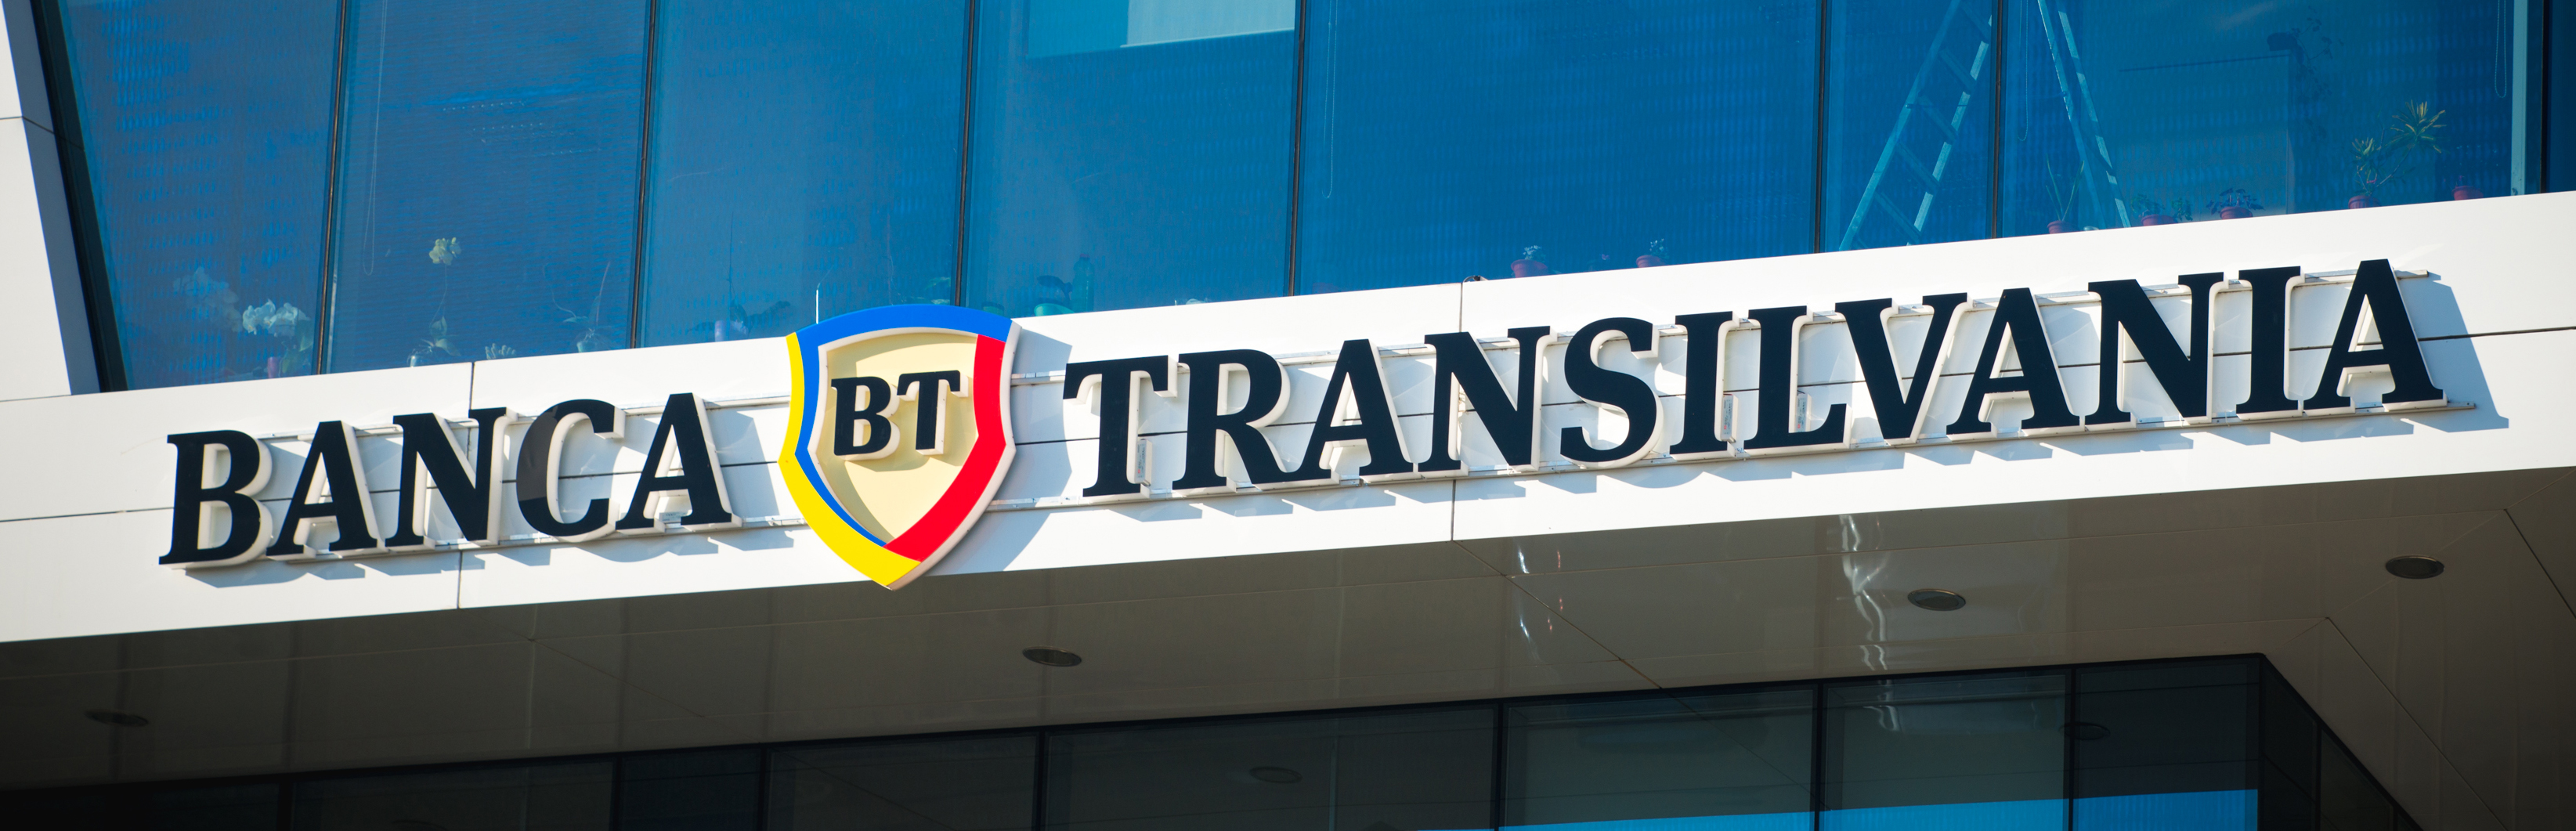 Bancpost integration with Banca Transilvania reached the final stage